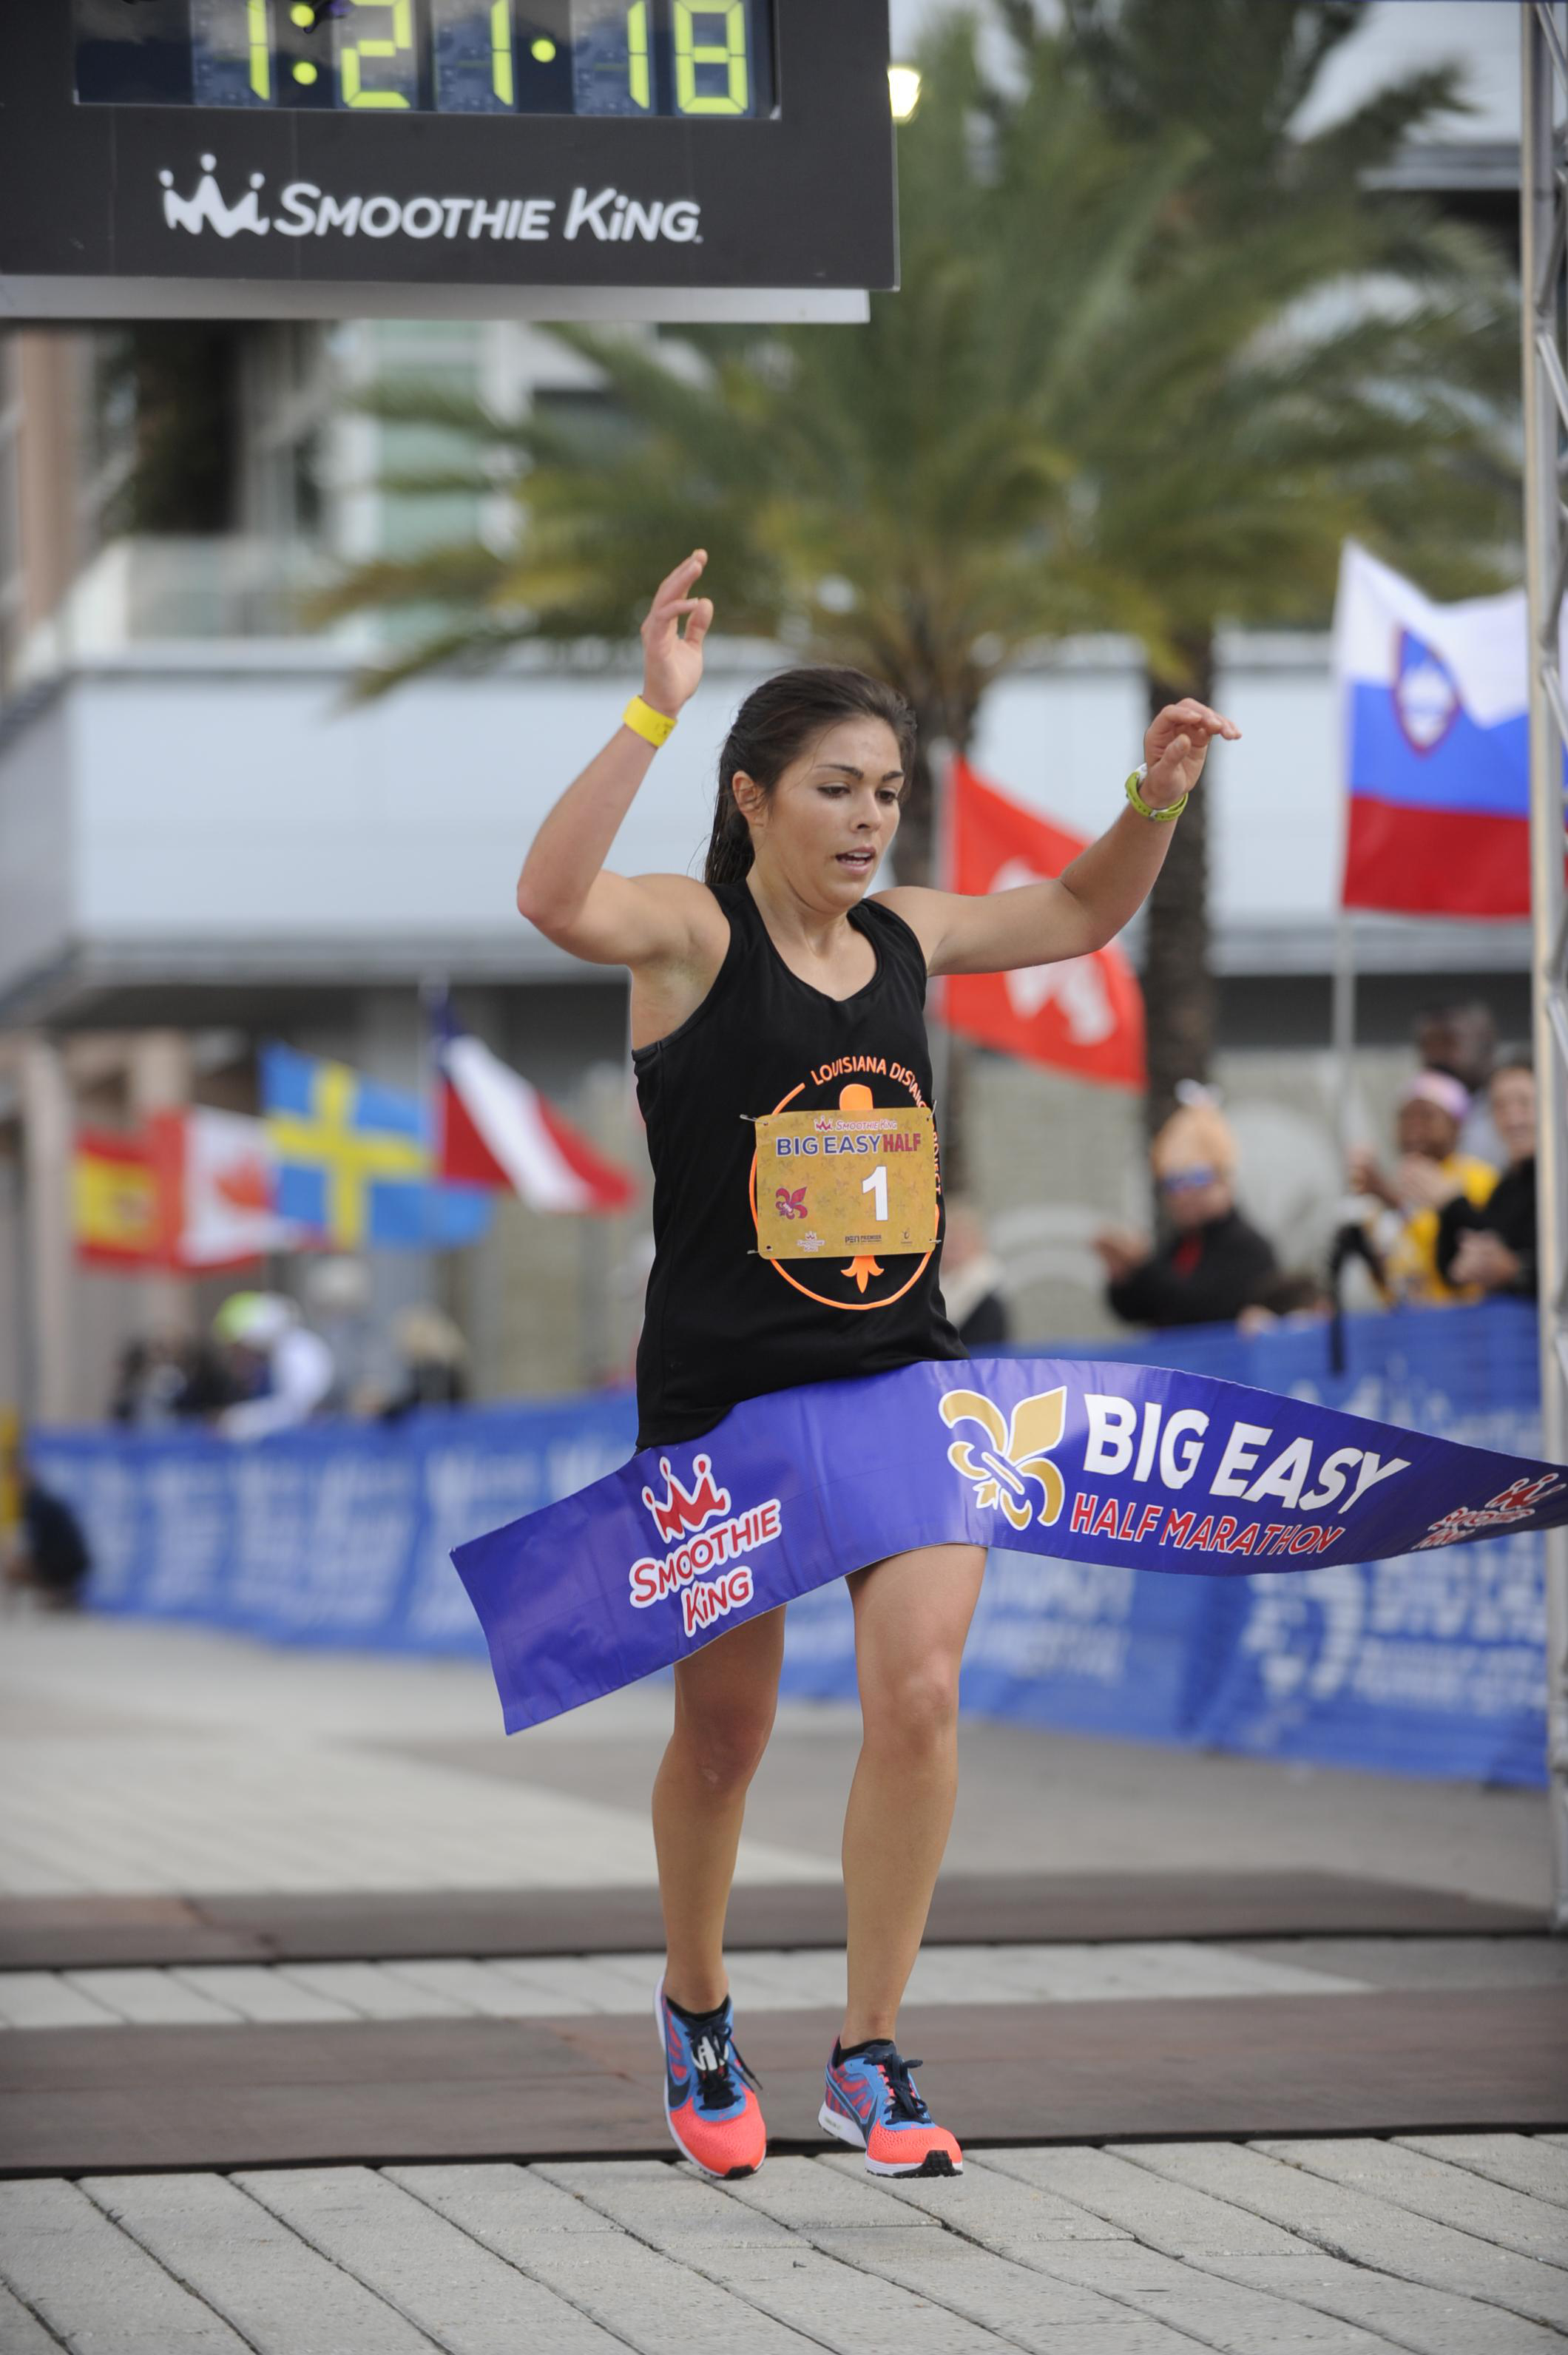 Big Easy Run Fest New Orleans Photo Gallery